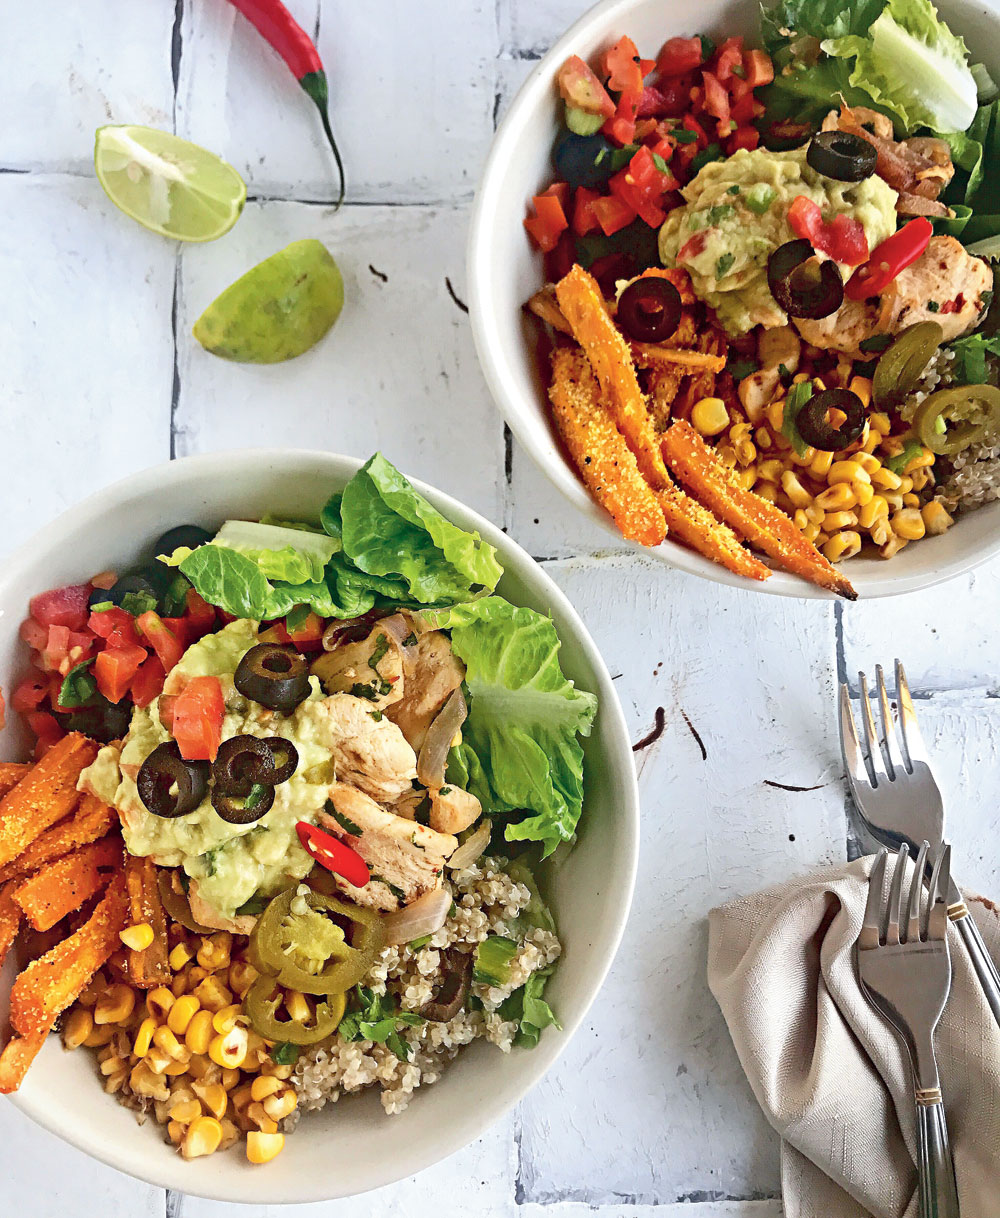 Toss up a salad this summer with these simple recipes